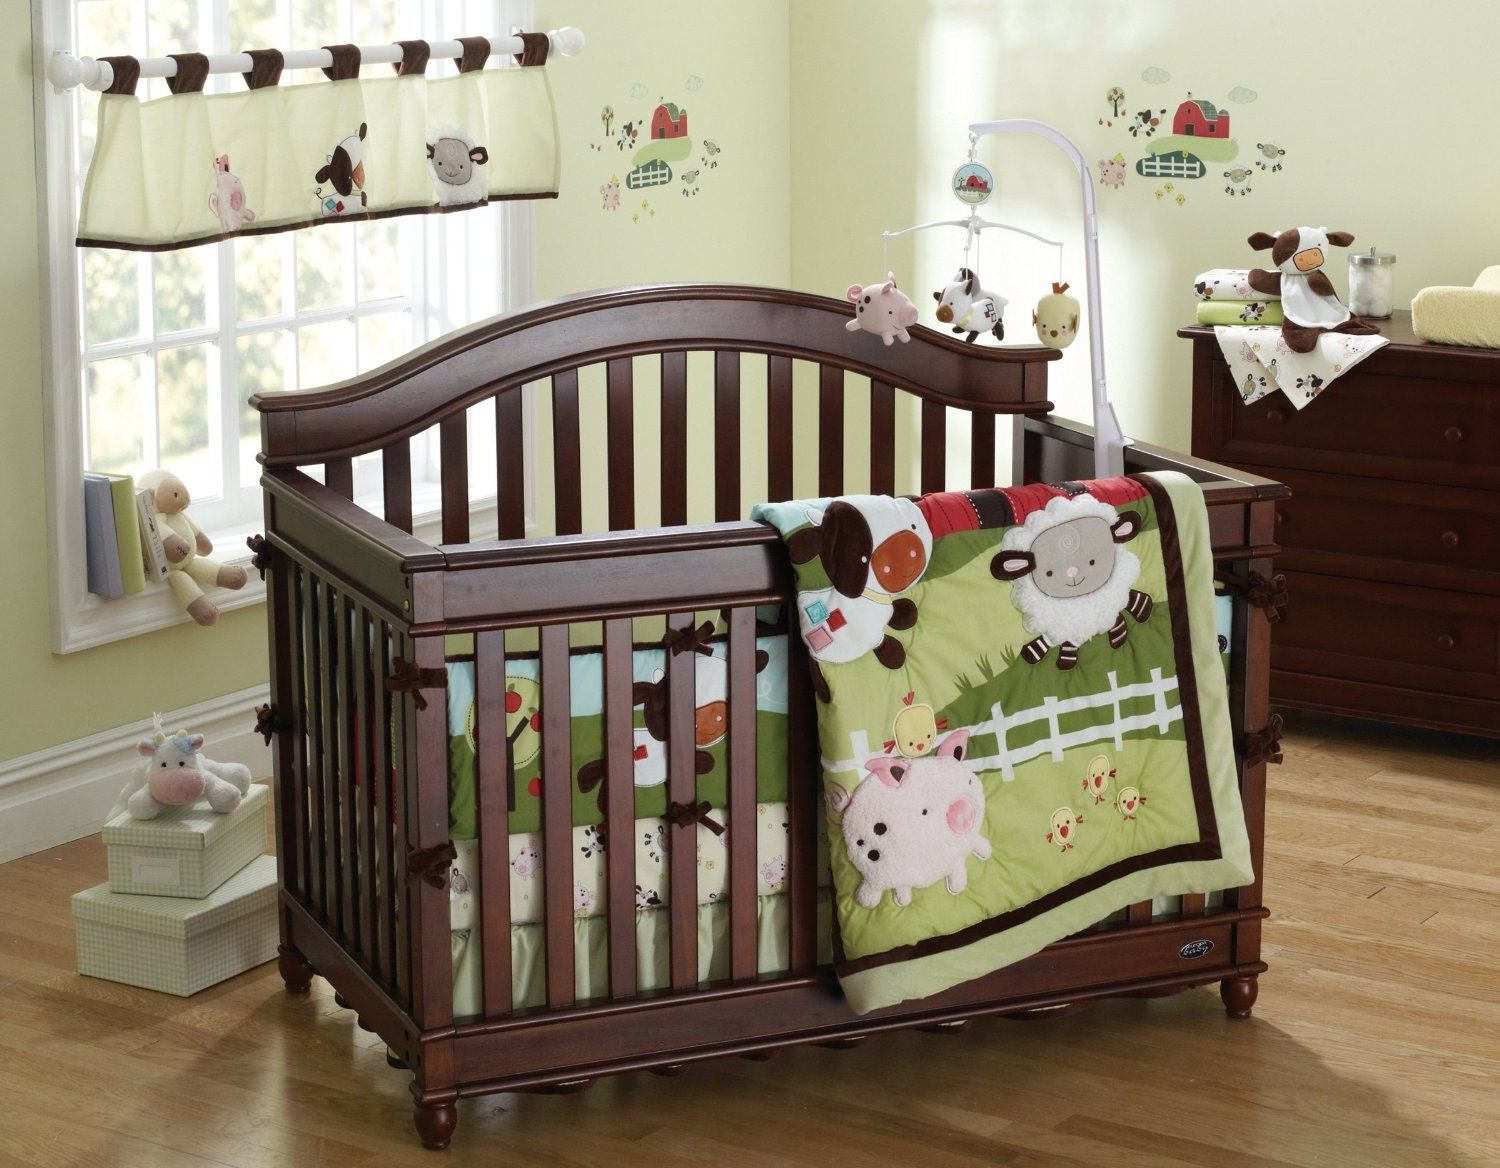 Fisher Price Farm Friends Crib Bedding For Baby Baby